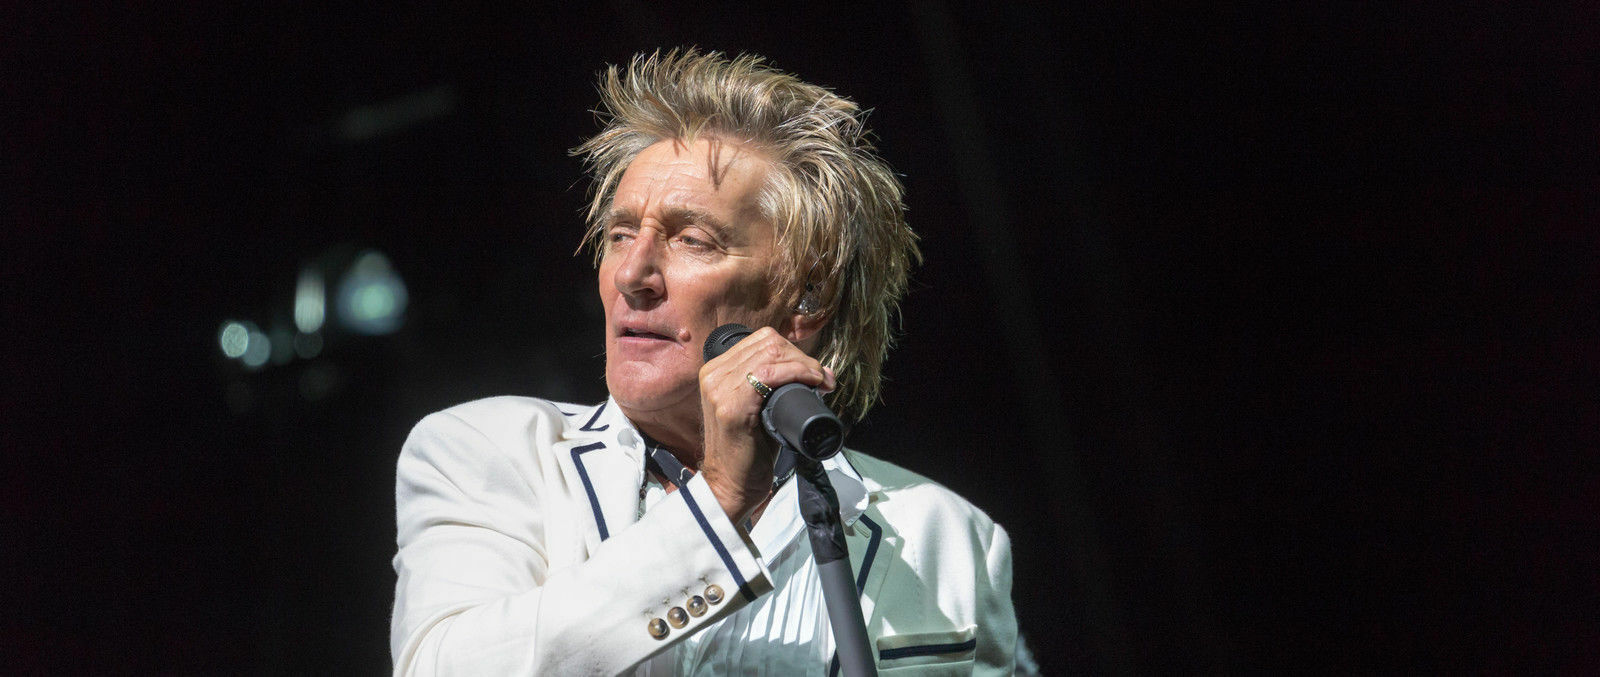 Rod Stewart Tickets (Rescheduled from April 12)